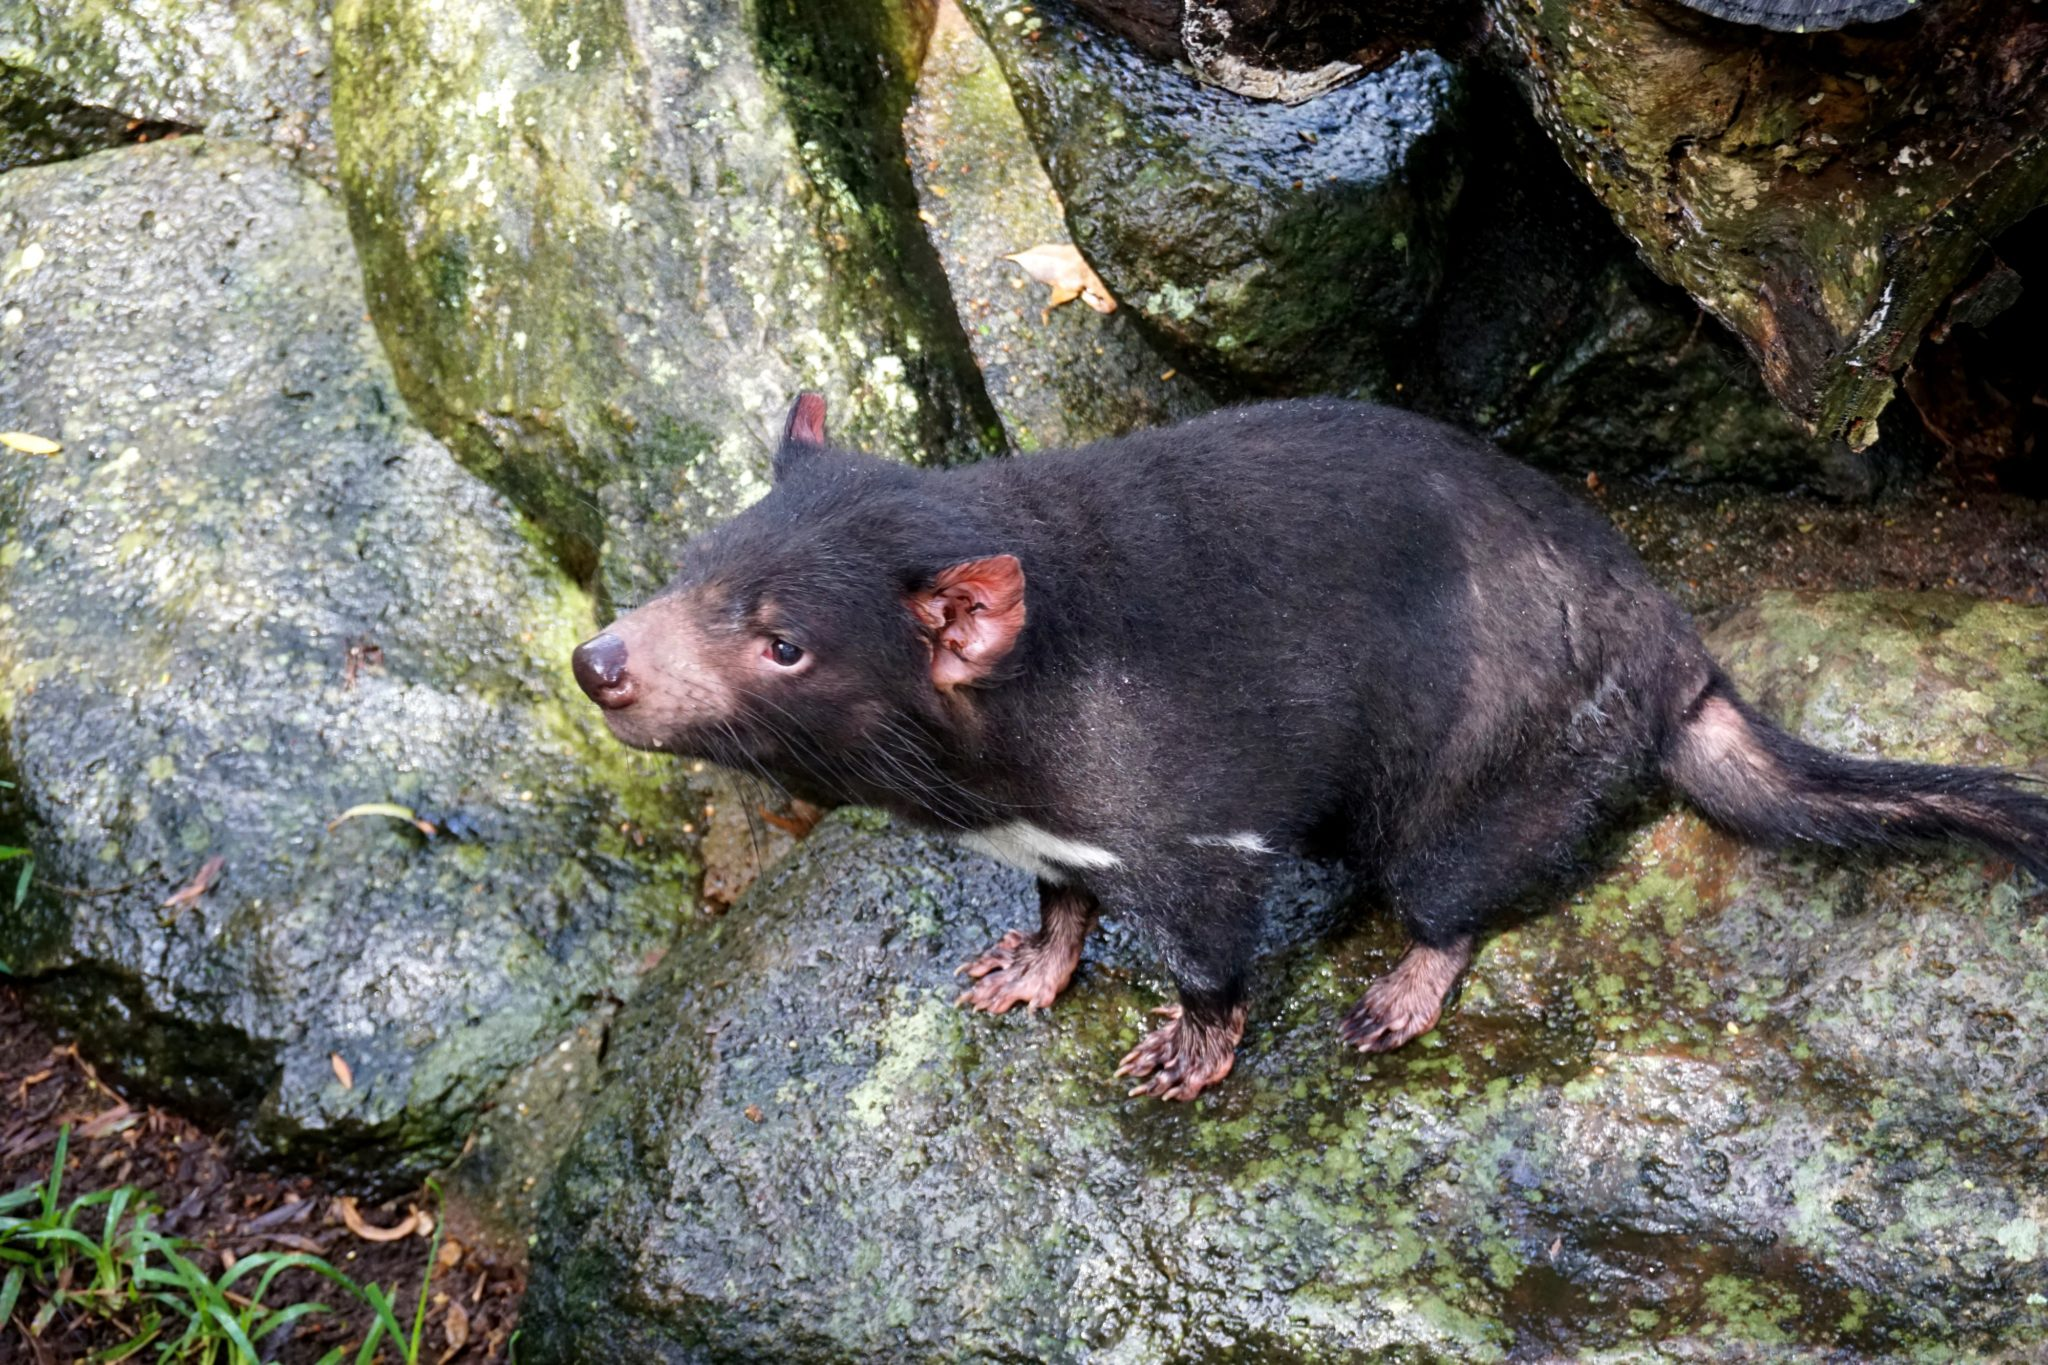 Tasmanian Devil standing on a rock.